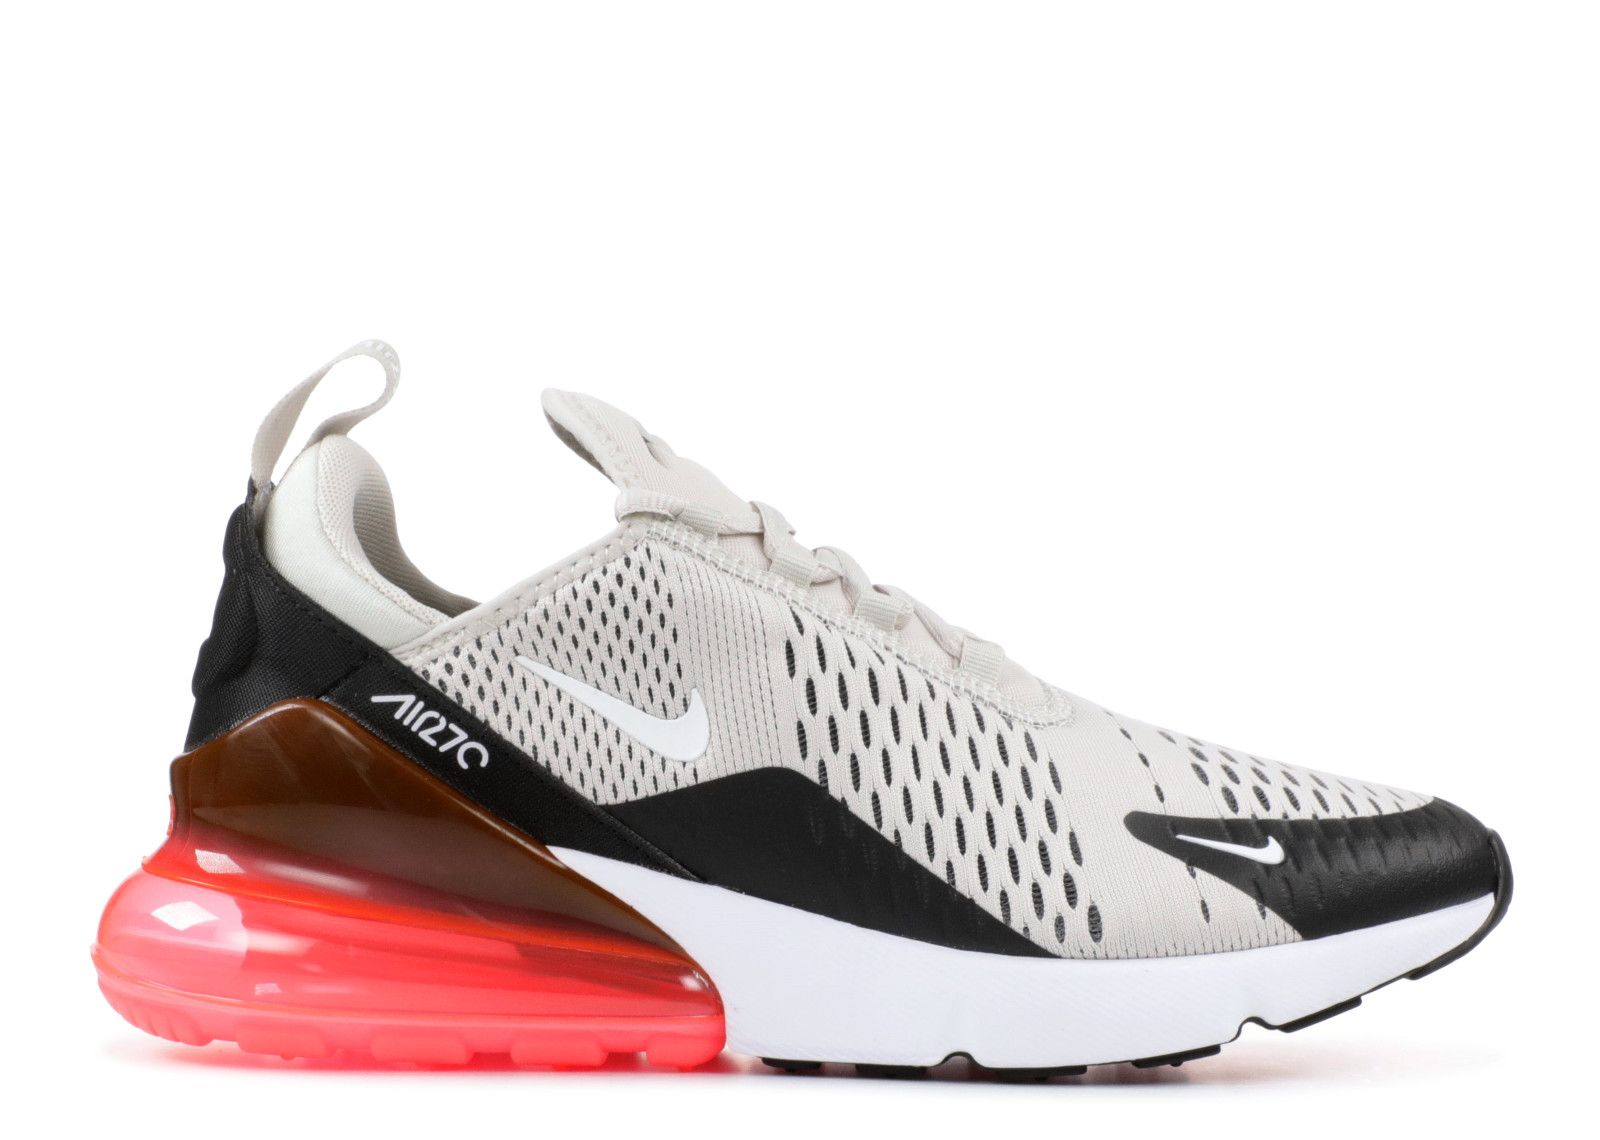 Air Max 270 - Nike - ah8050 003 - black light bone-hot punch  7b8fa2655